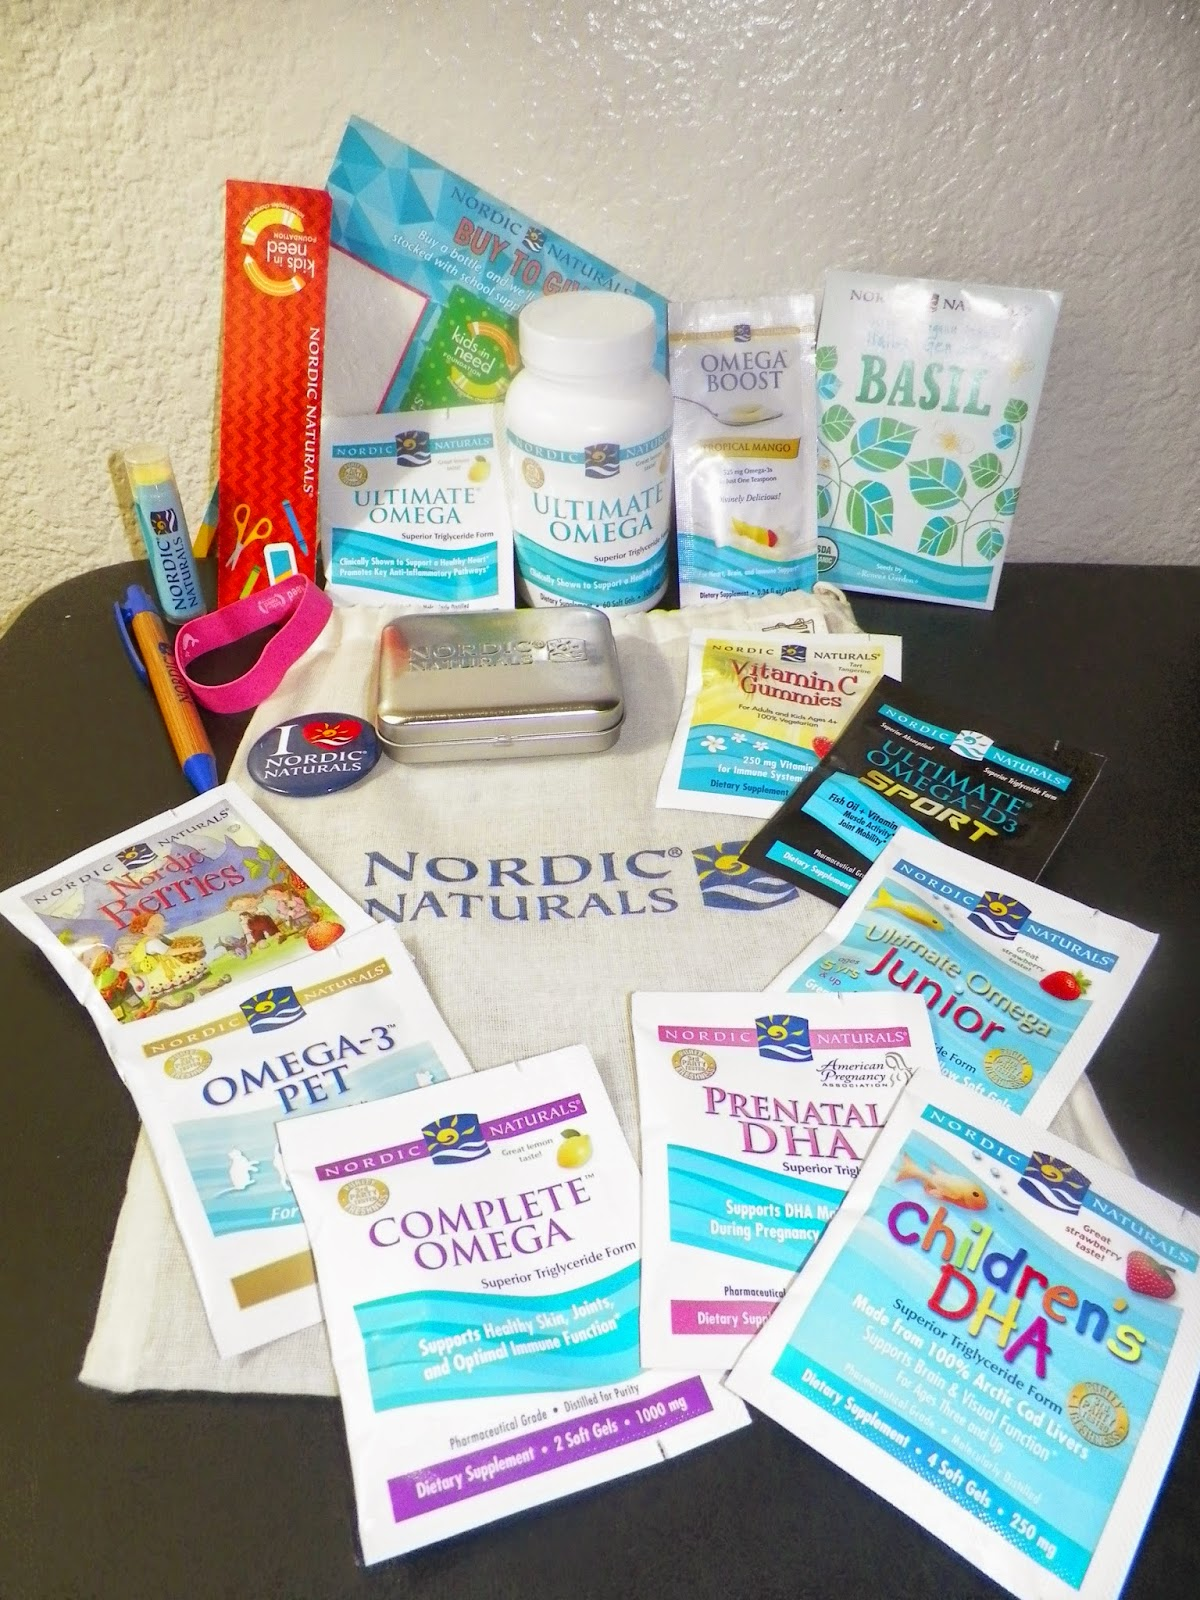 Nordic Naturals Fish Oil Intergrity